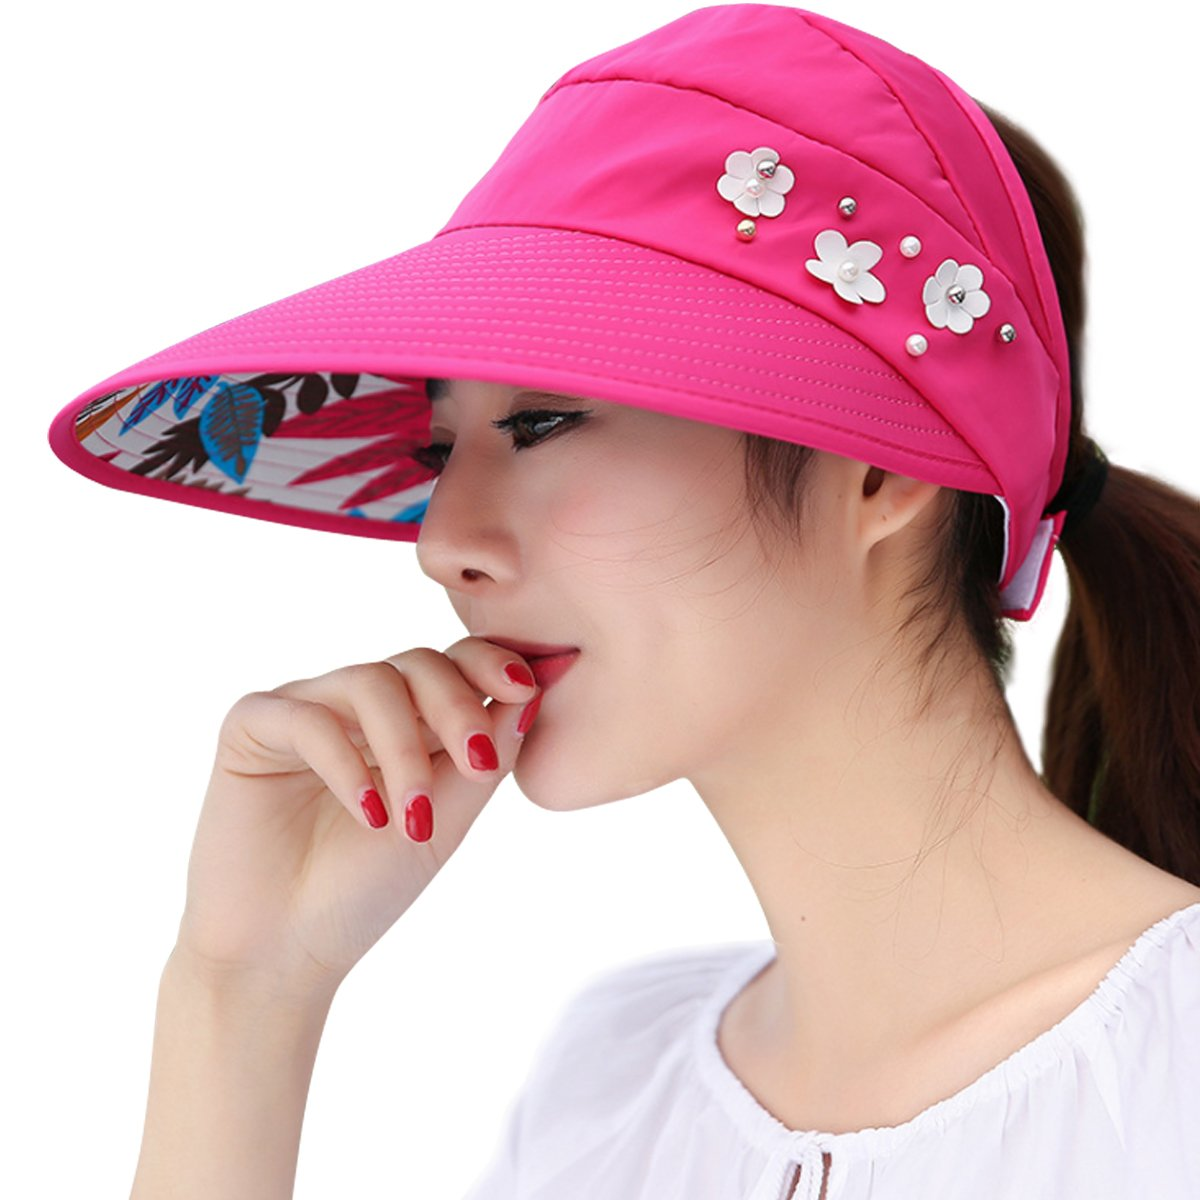 6c20ca01d8360 Lanzom Women Wide Brim UV Protection Summer Sun Hat Beach Visor Cap UPF 50  headband0012 Hats ...